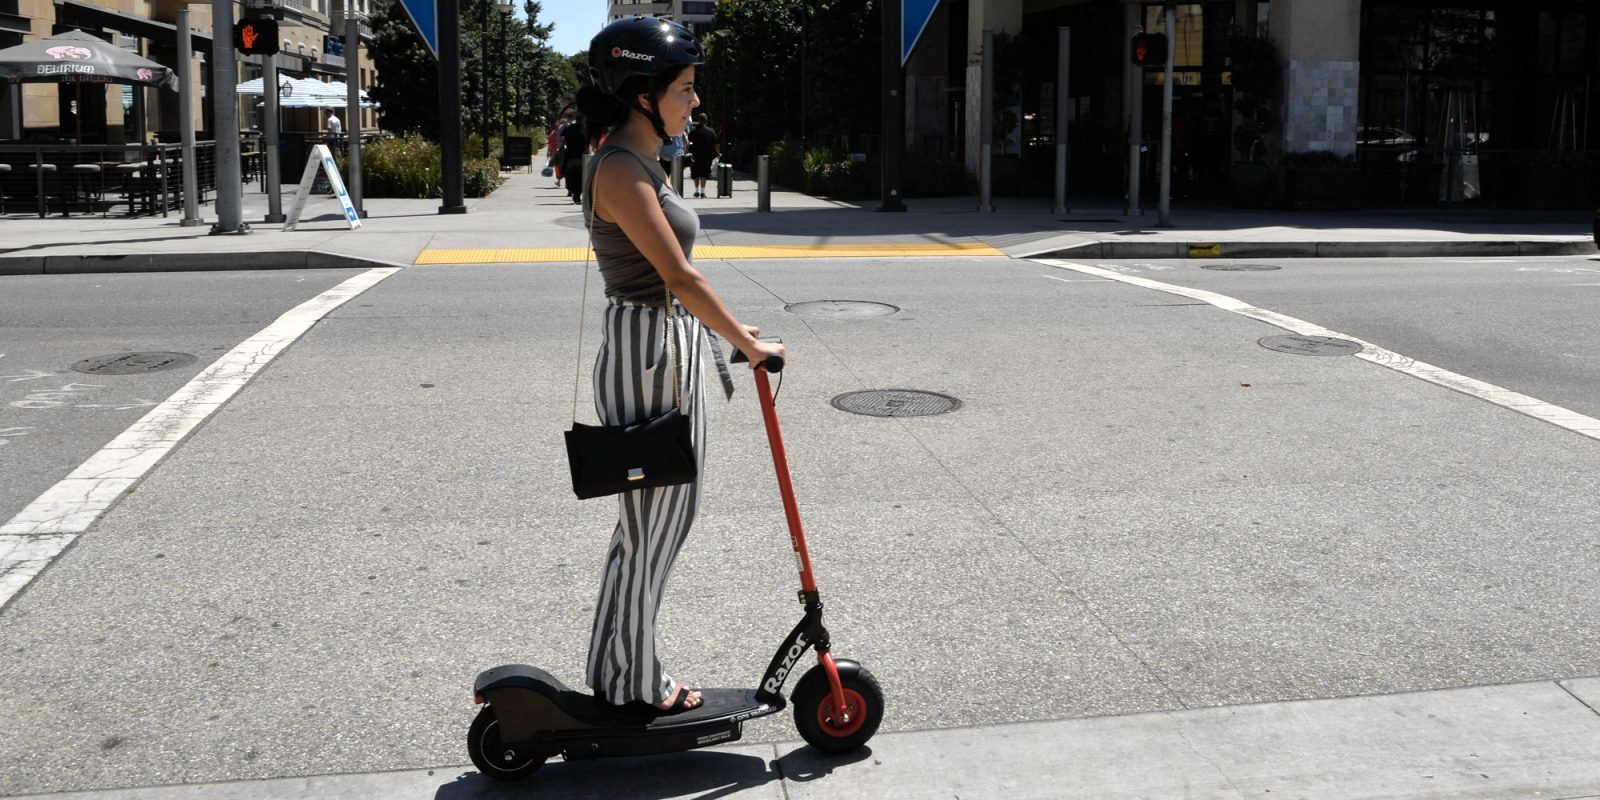 Razor Joins The Wave Of Electric Scooter Als Becoming First In Long Beach